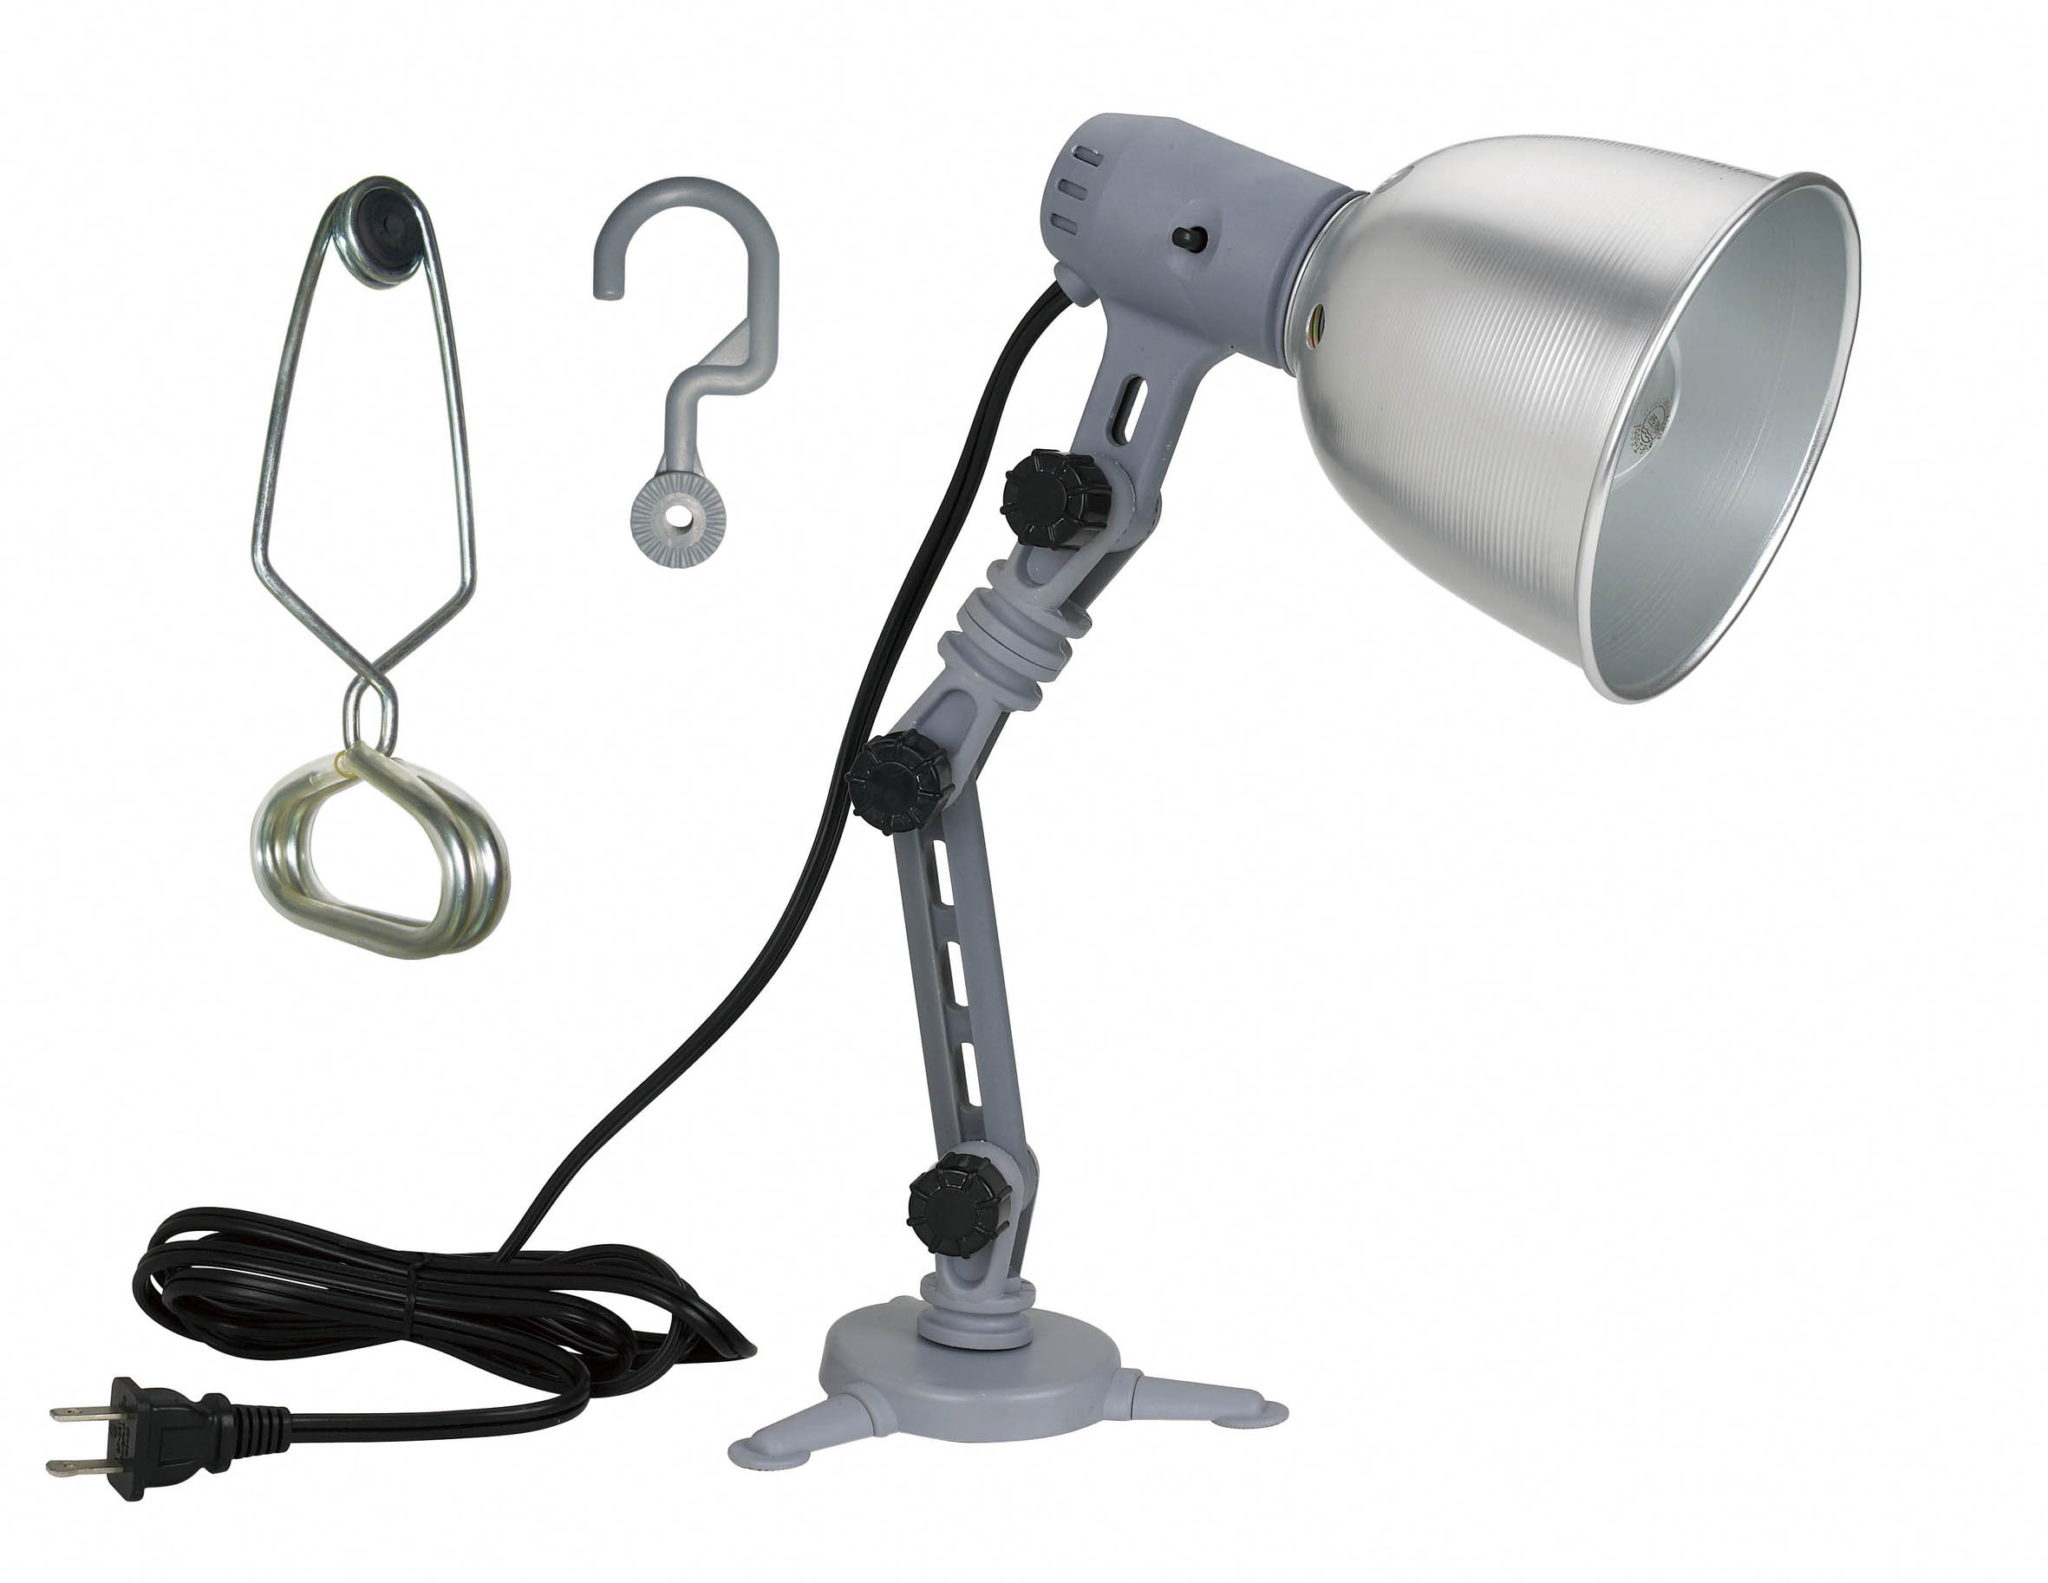 the outdoor rechargeable work opus cordless led lighting light